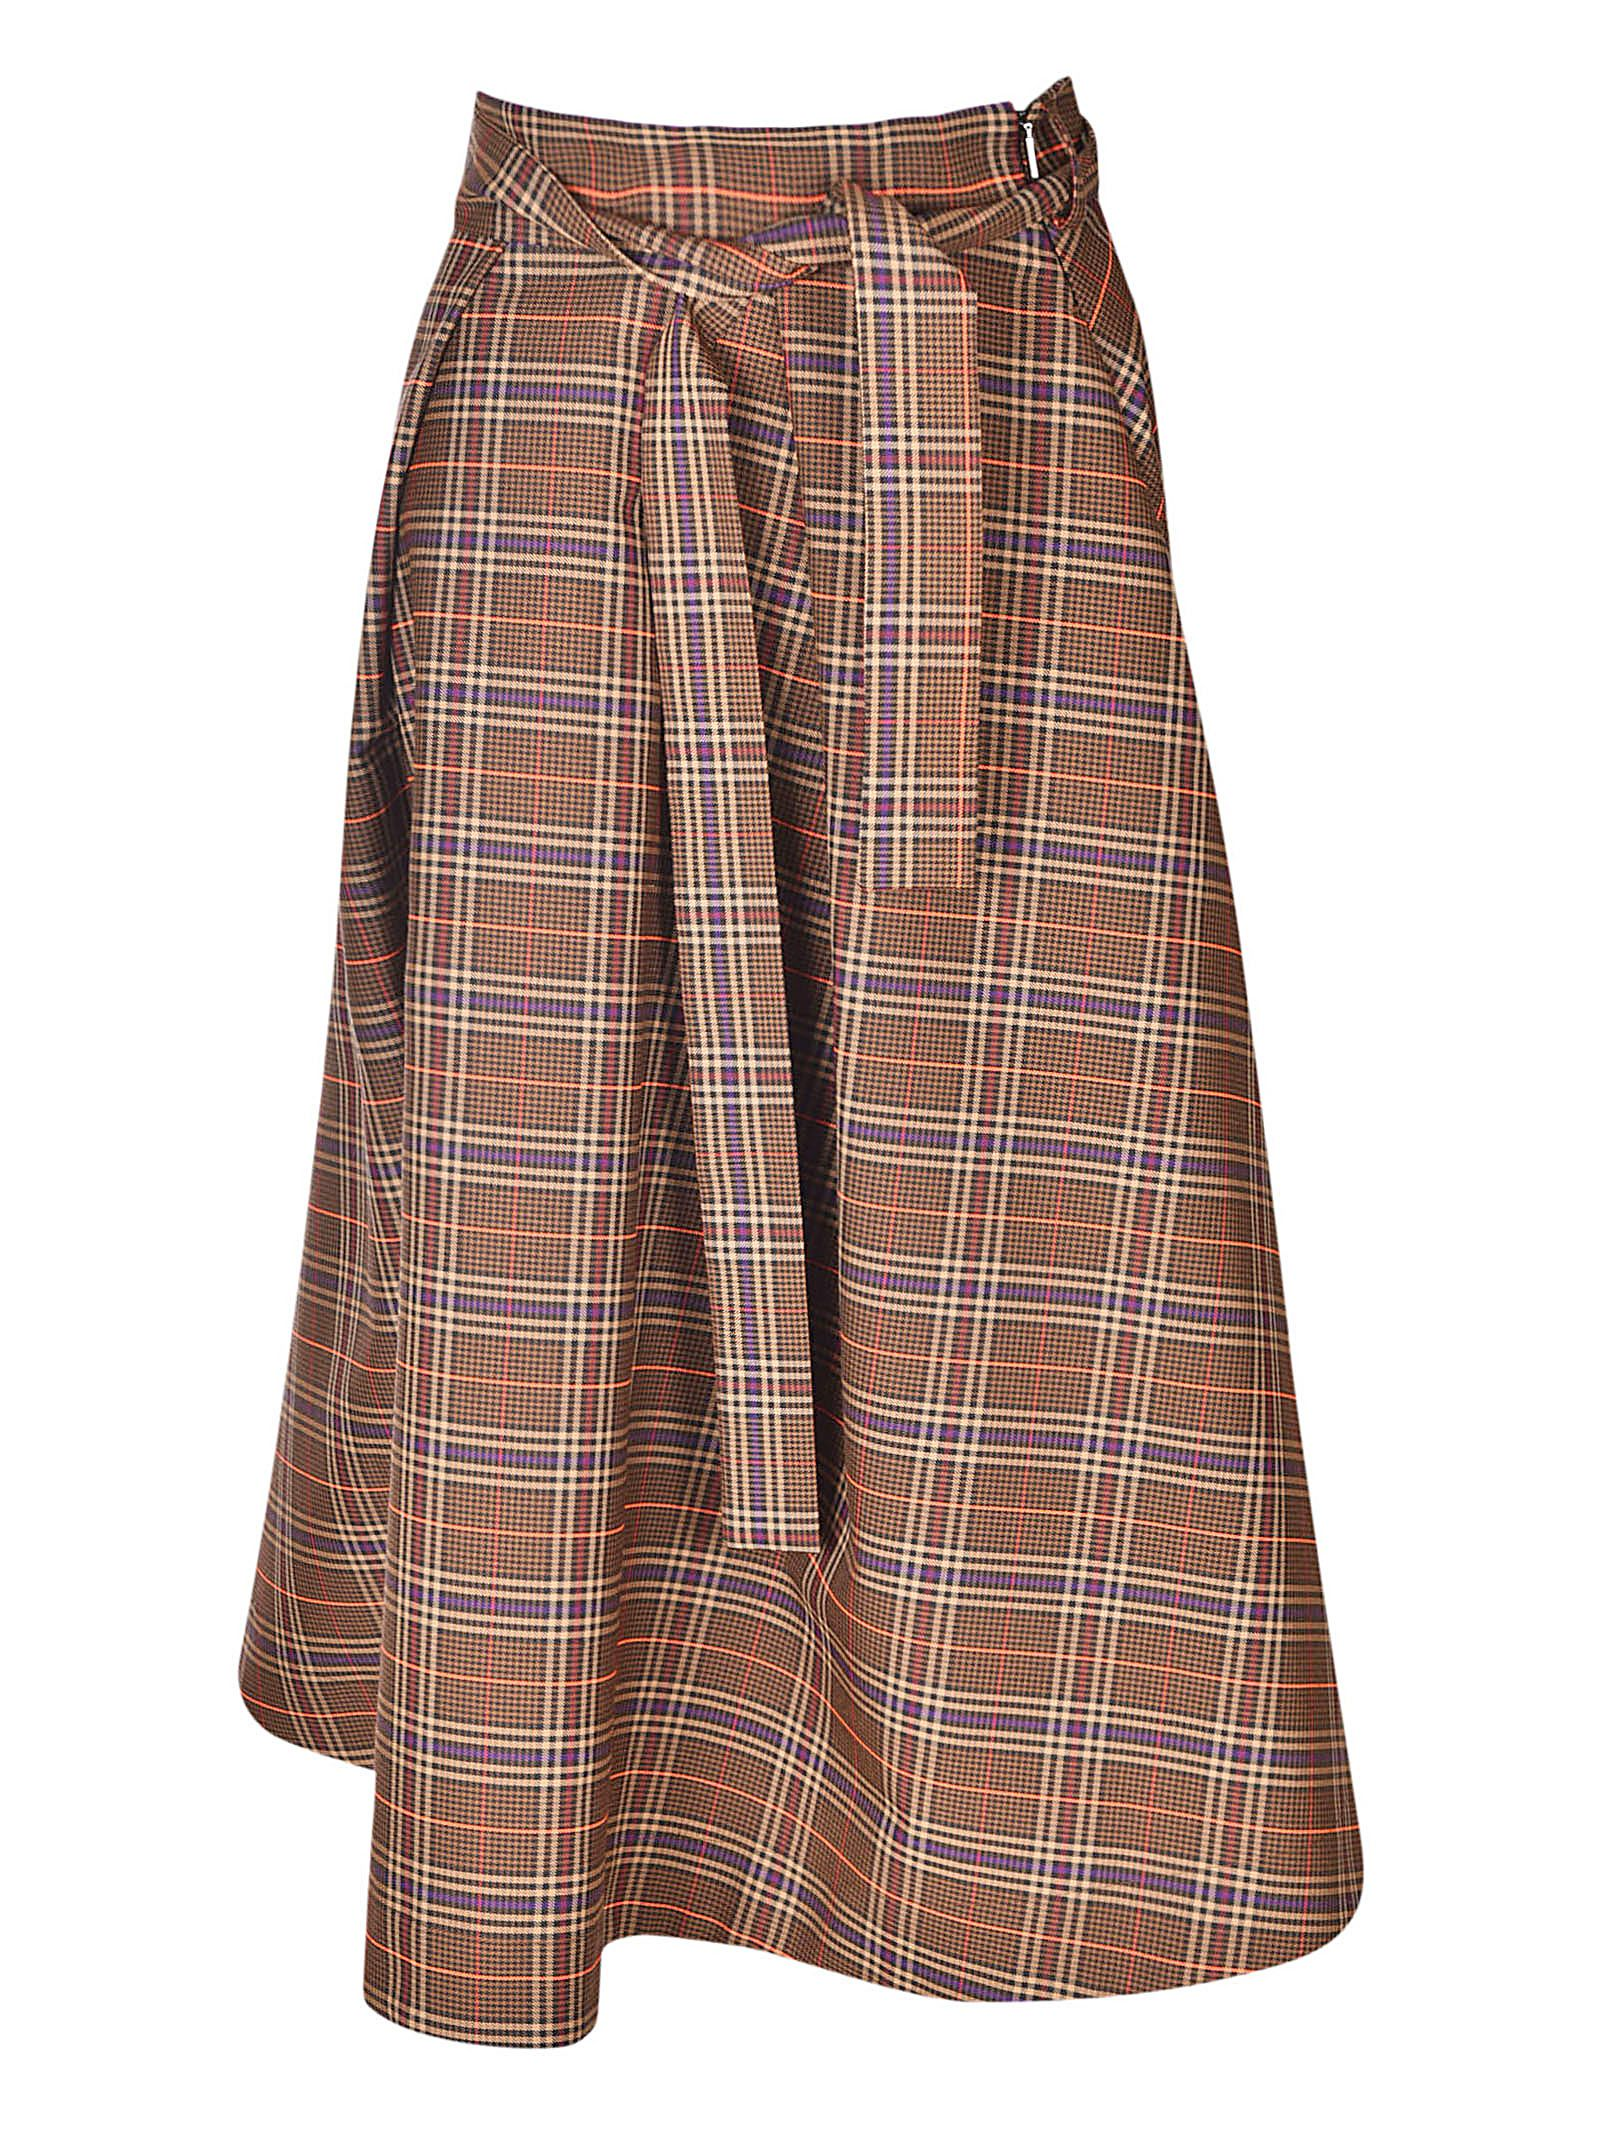 CHECKED FLARED SKIRT